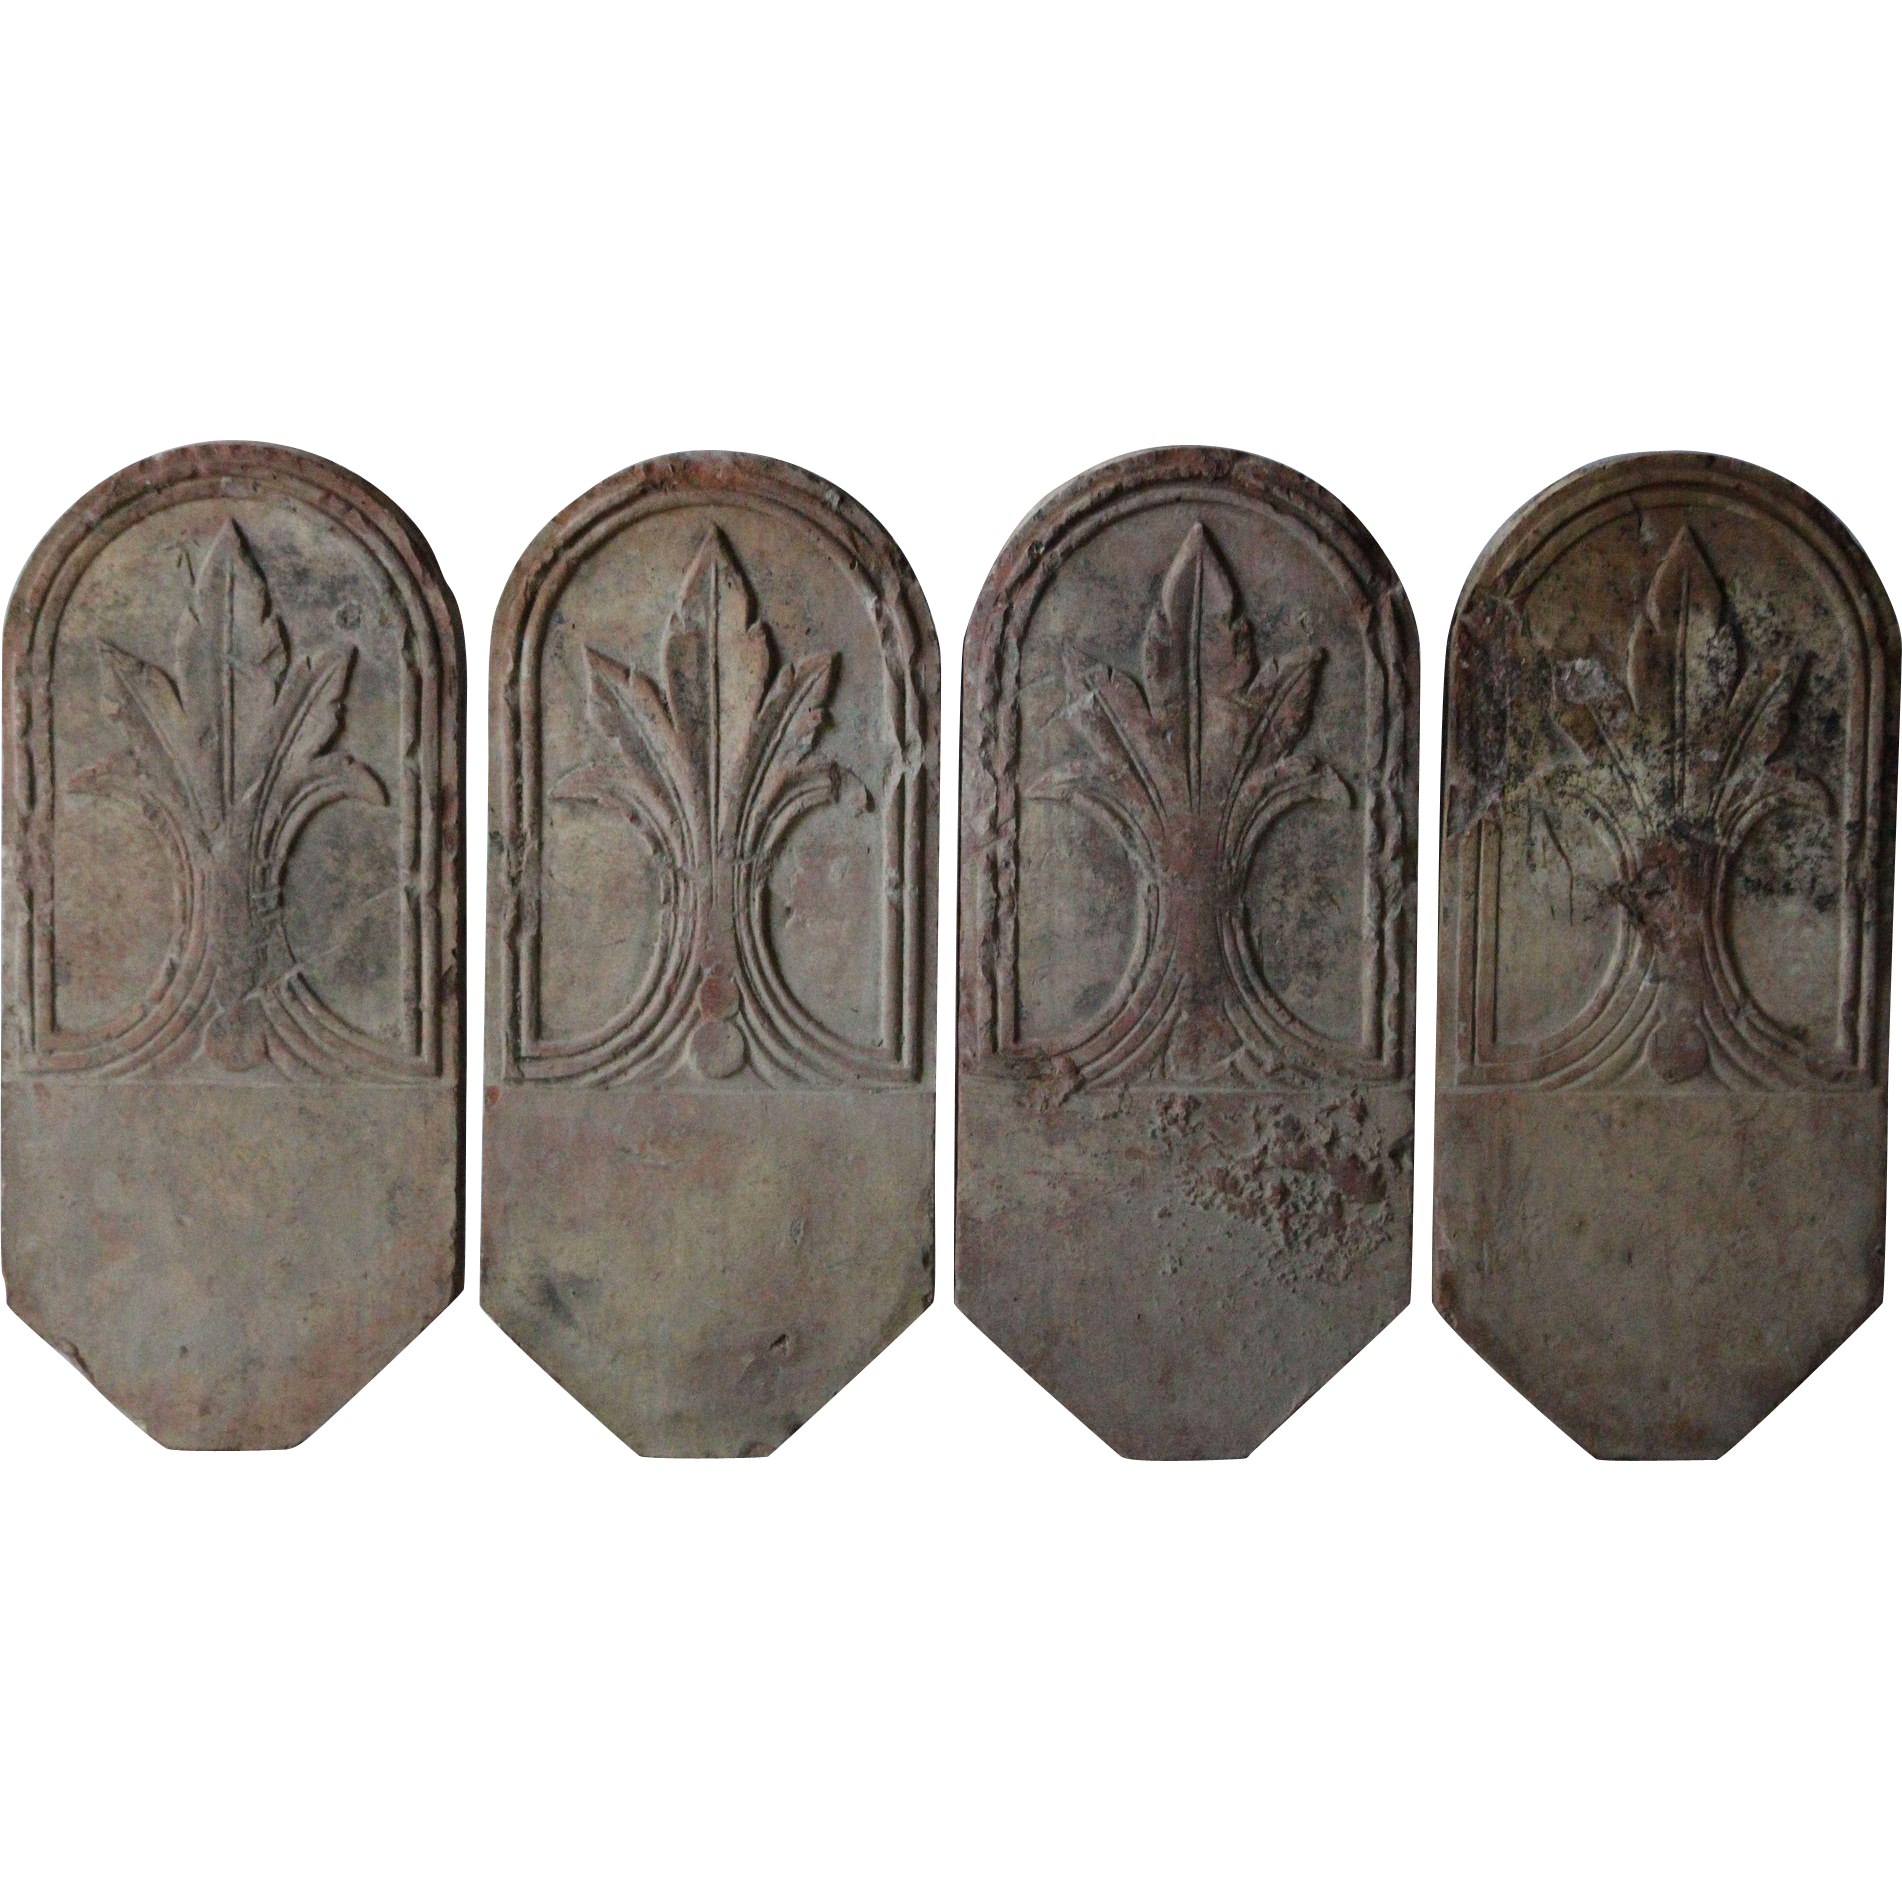 19th Century French Terracotta Garden Border Edging. A Group Of Four Decorative  Tiles In Their